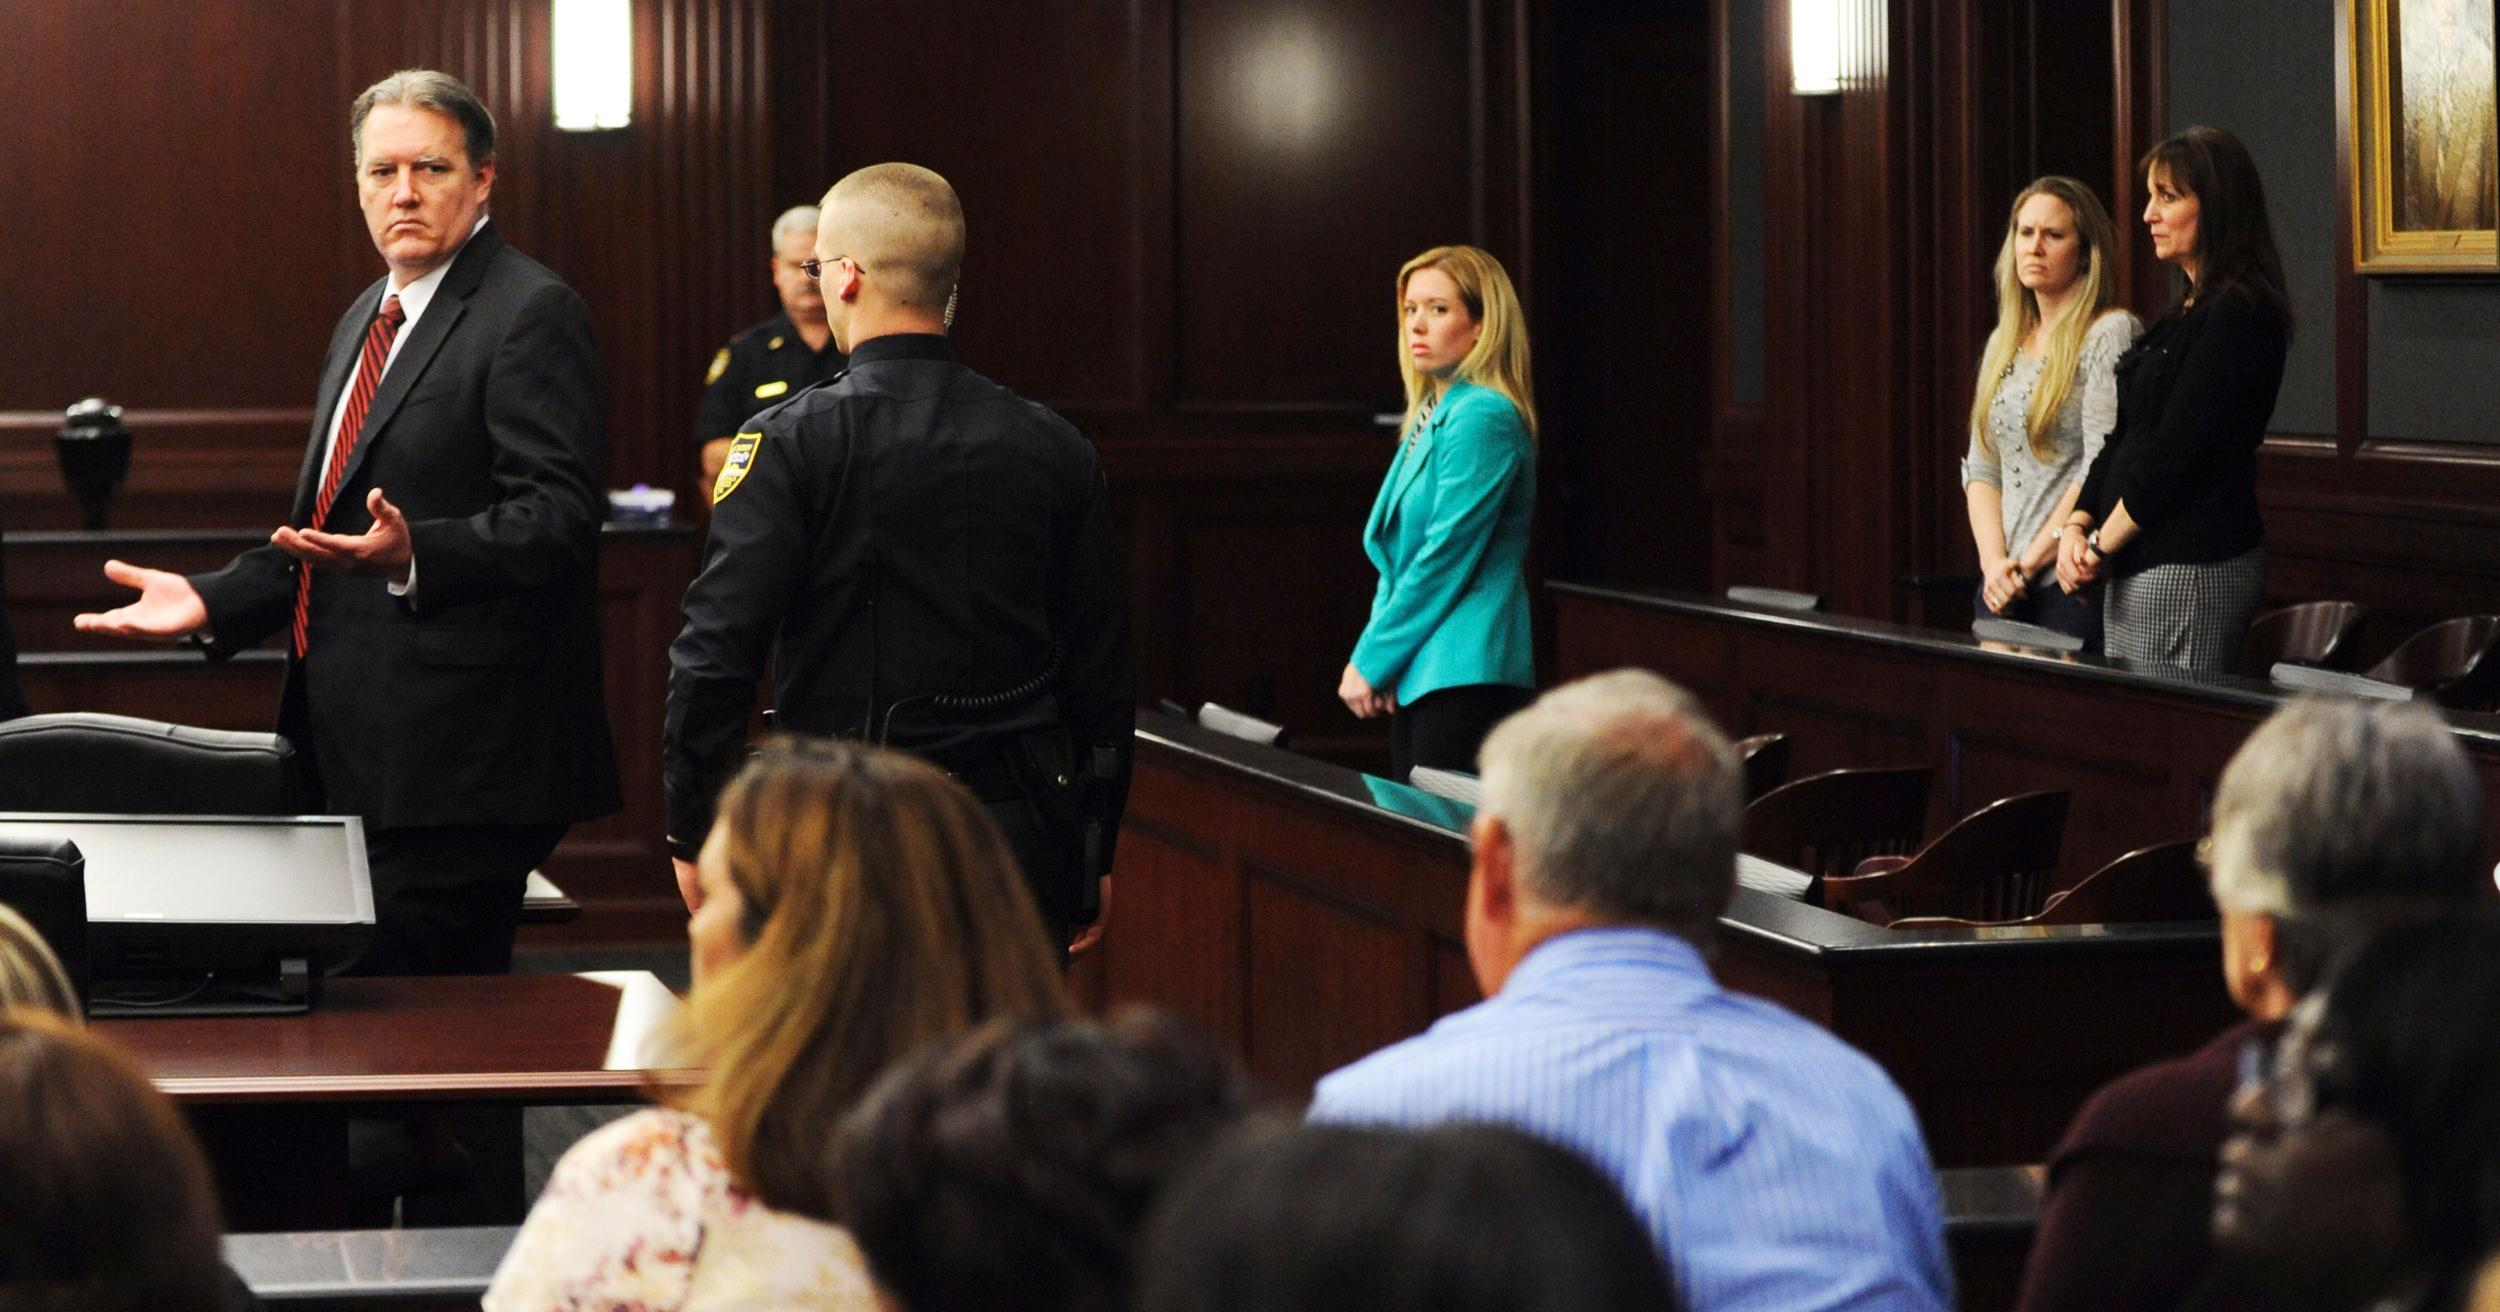 Image: Michael Dunn raises his hands in disbelief as he looks at his parents after the verdicts were announced in his trial in Jacksonville